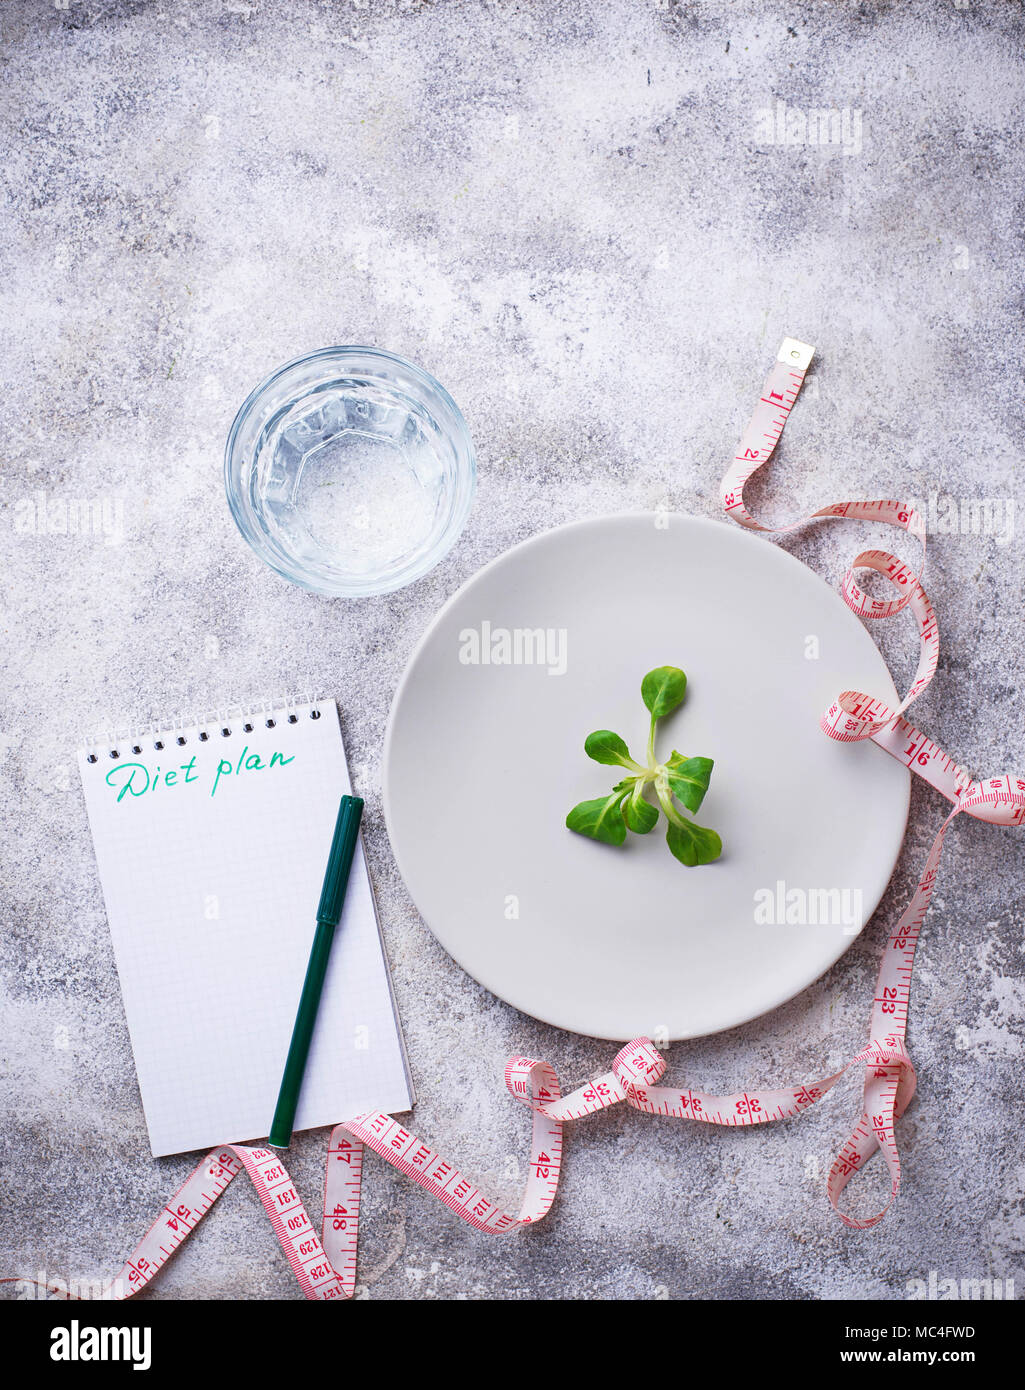 Plate with salad leaves, water and measuring tape - Stock Image